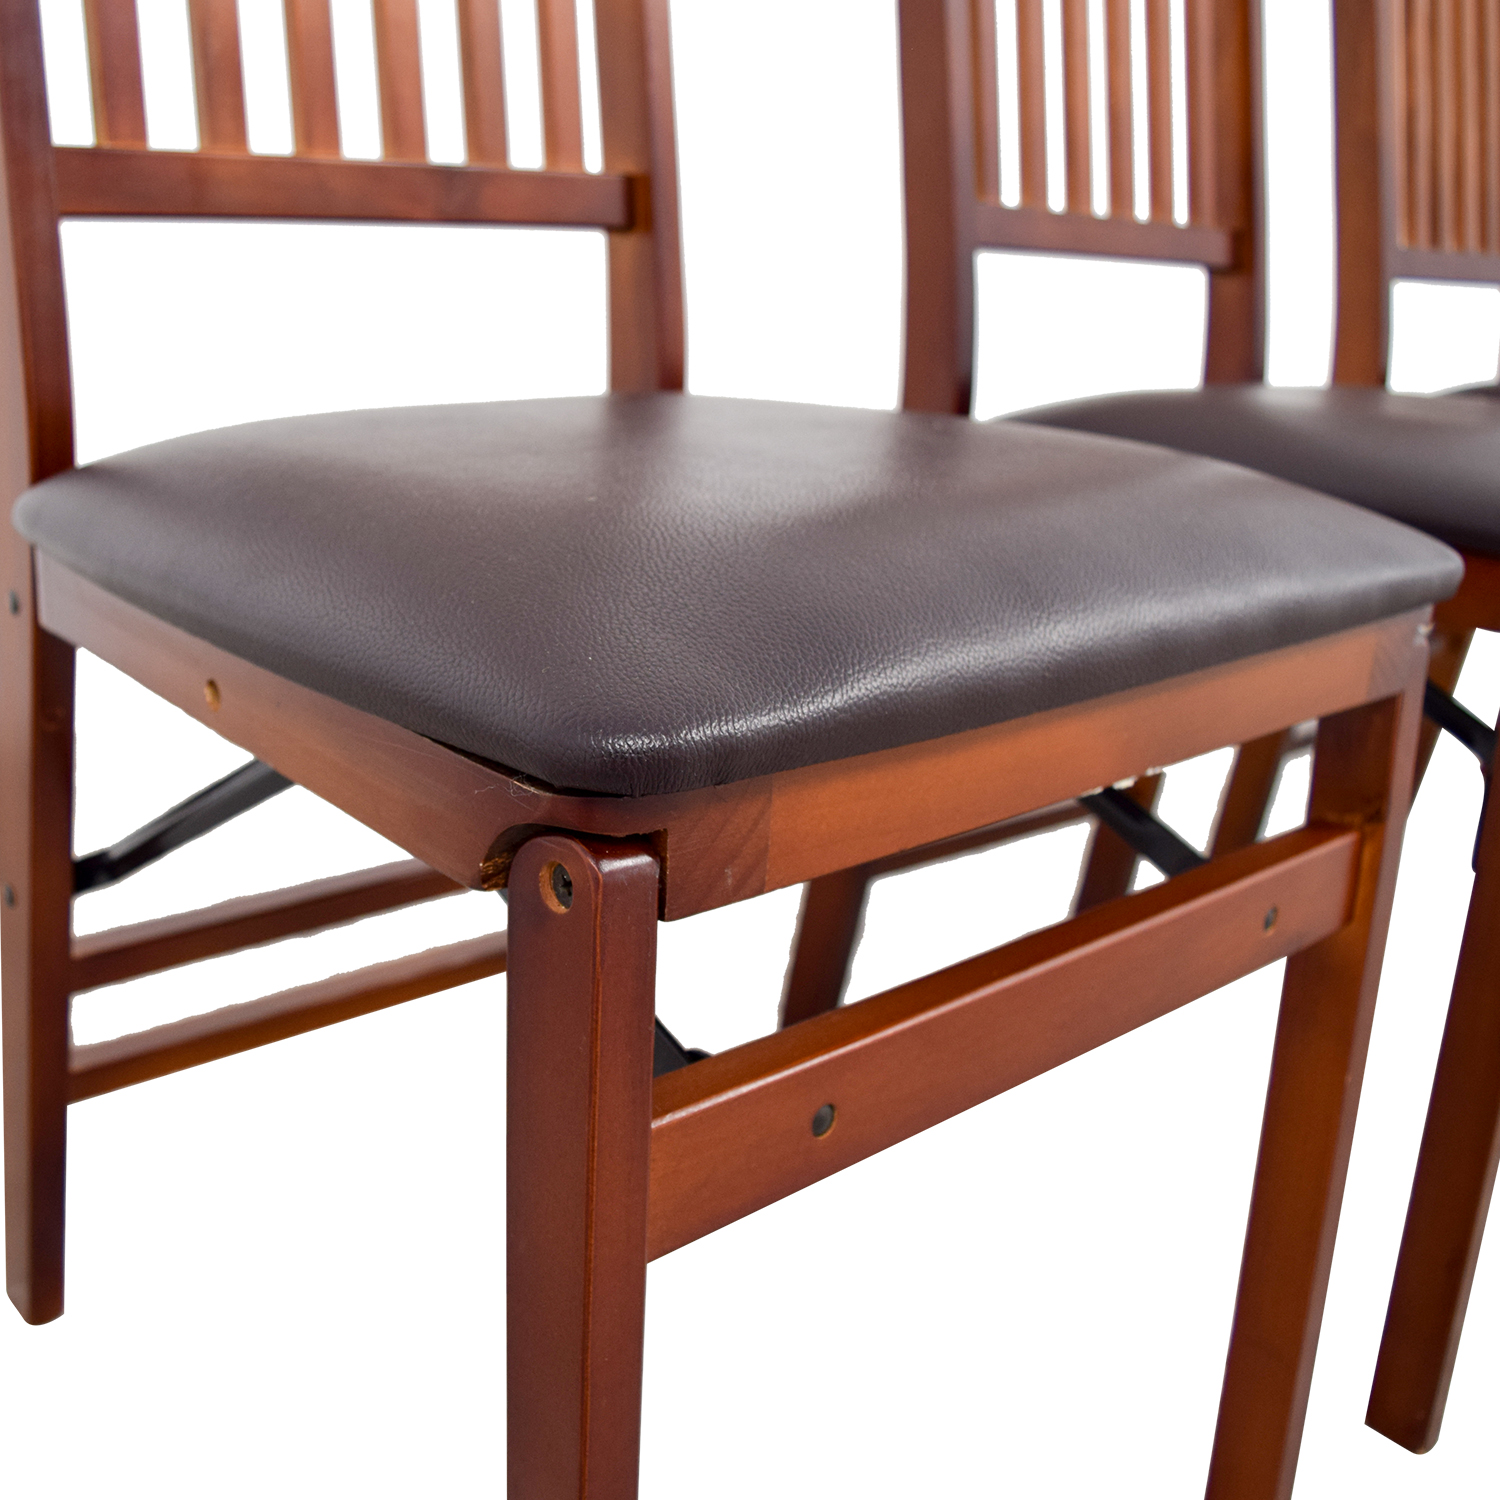 brown wooden folding chairs matrix fishing chair 40 off bed bath and beyond